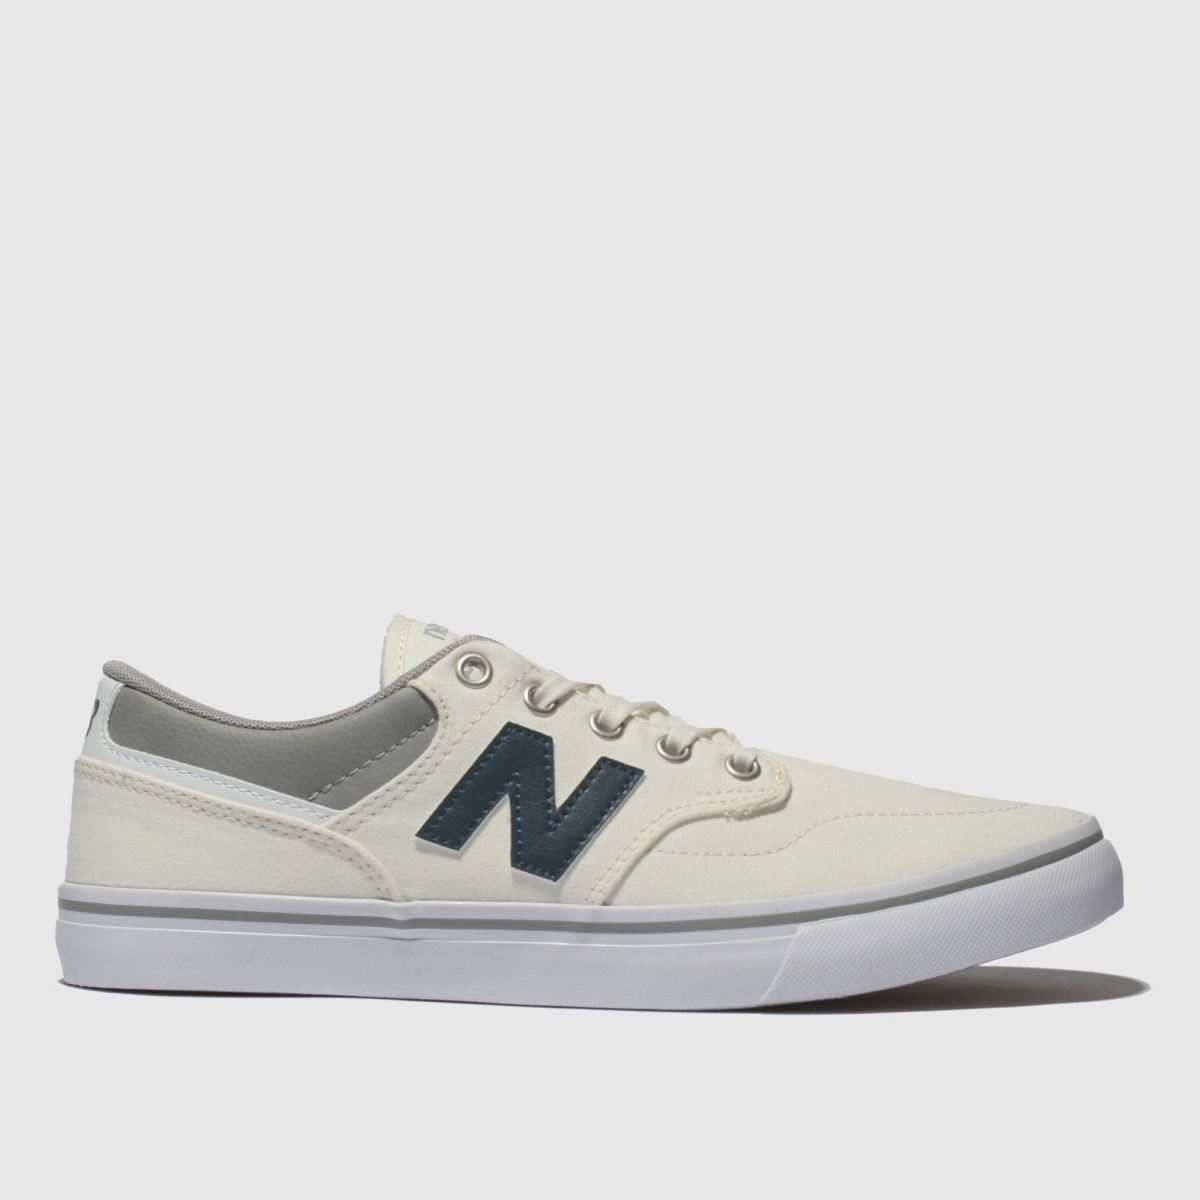 New Balance White & Grey All Coasts 331 Trainers